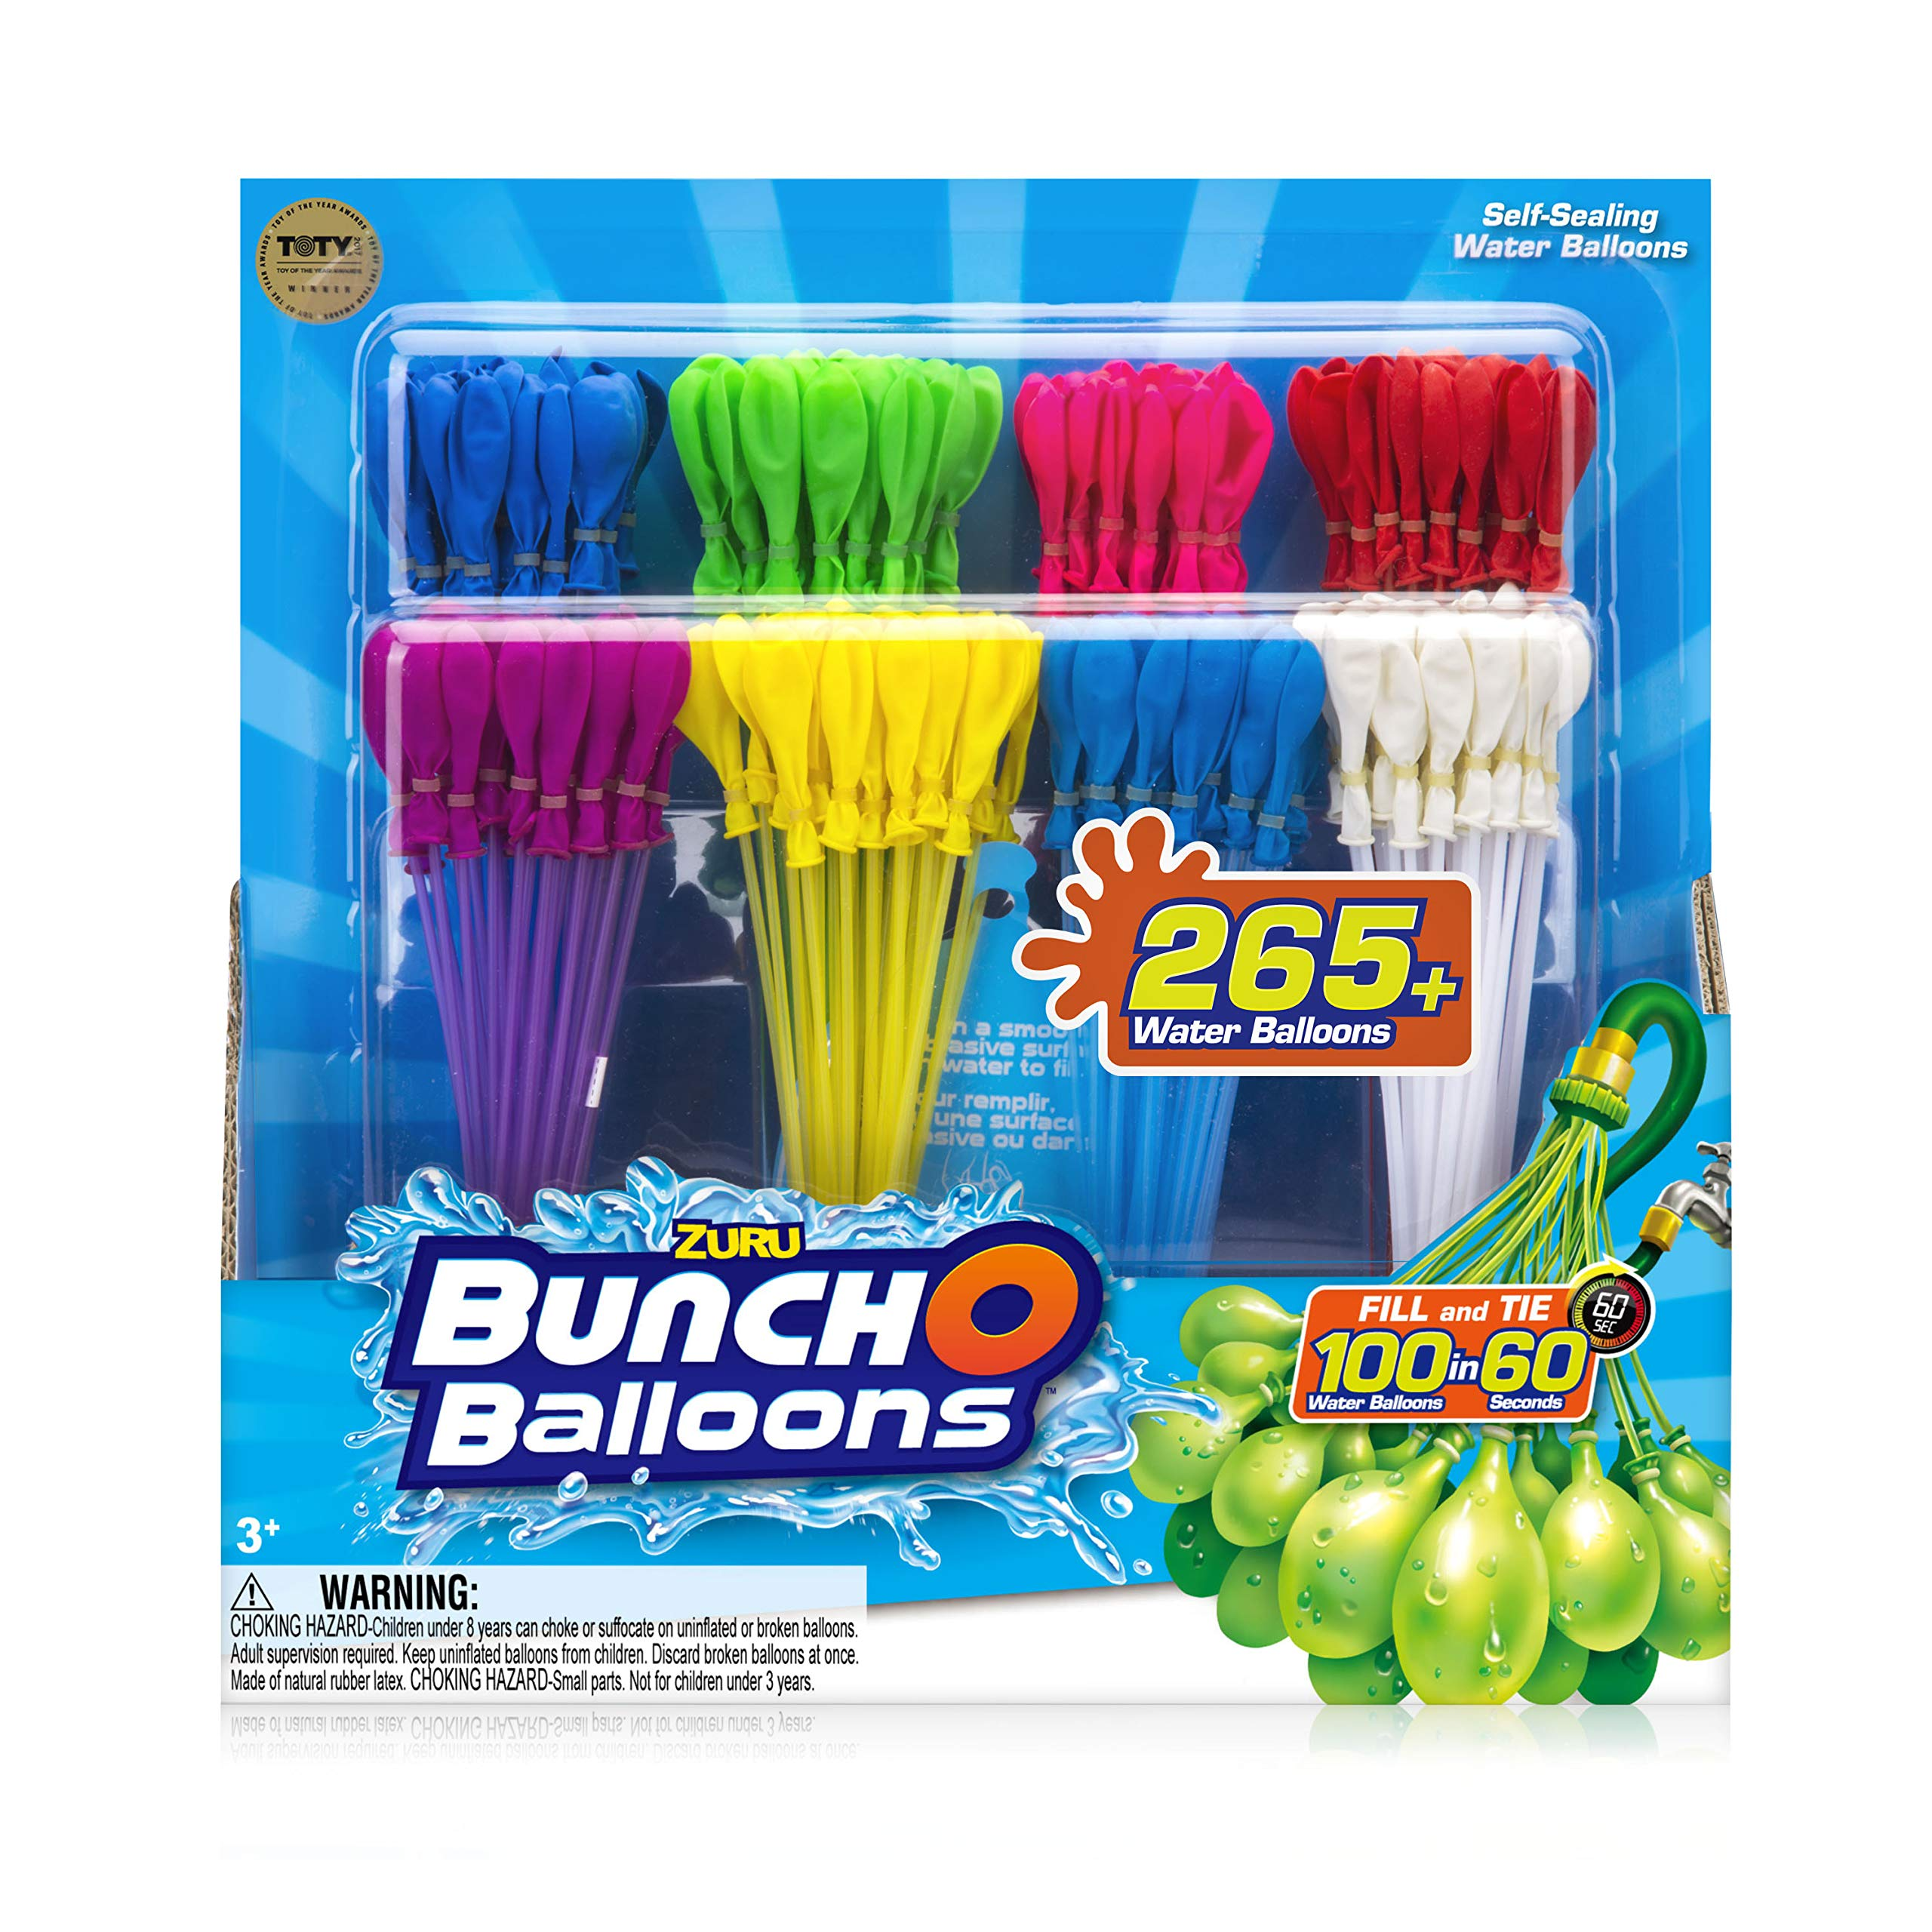 WATER BALLOONS - BUNCH OF BALLOONS RAPID REFILL 8 PACK by Bunch O Balloons